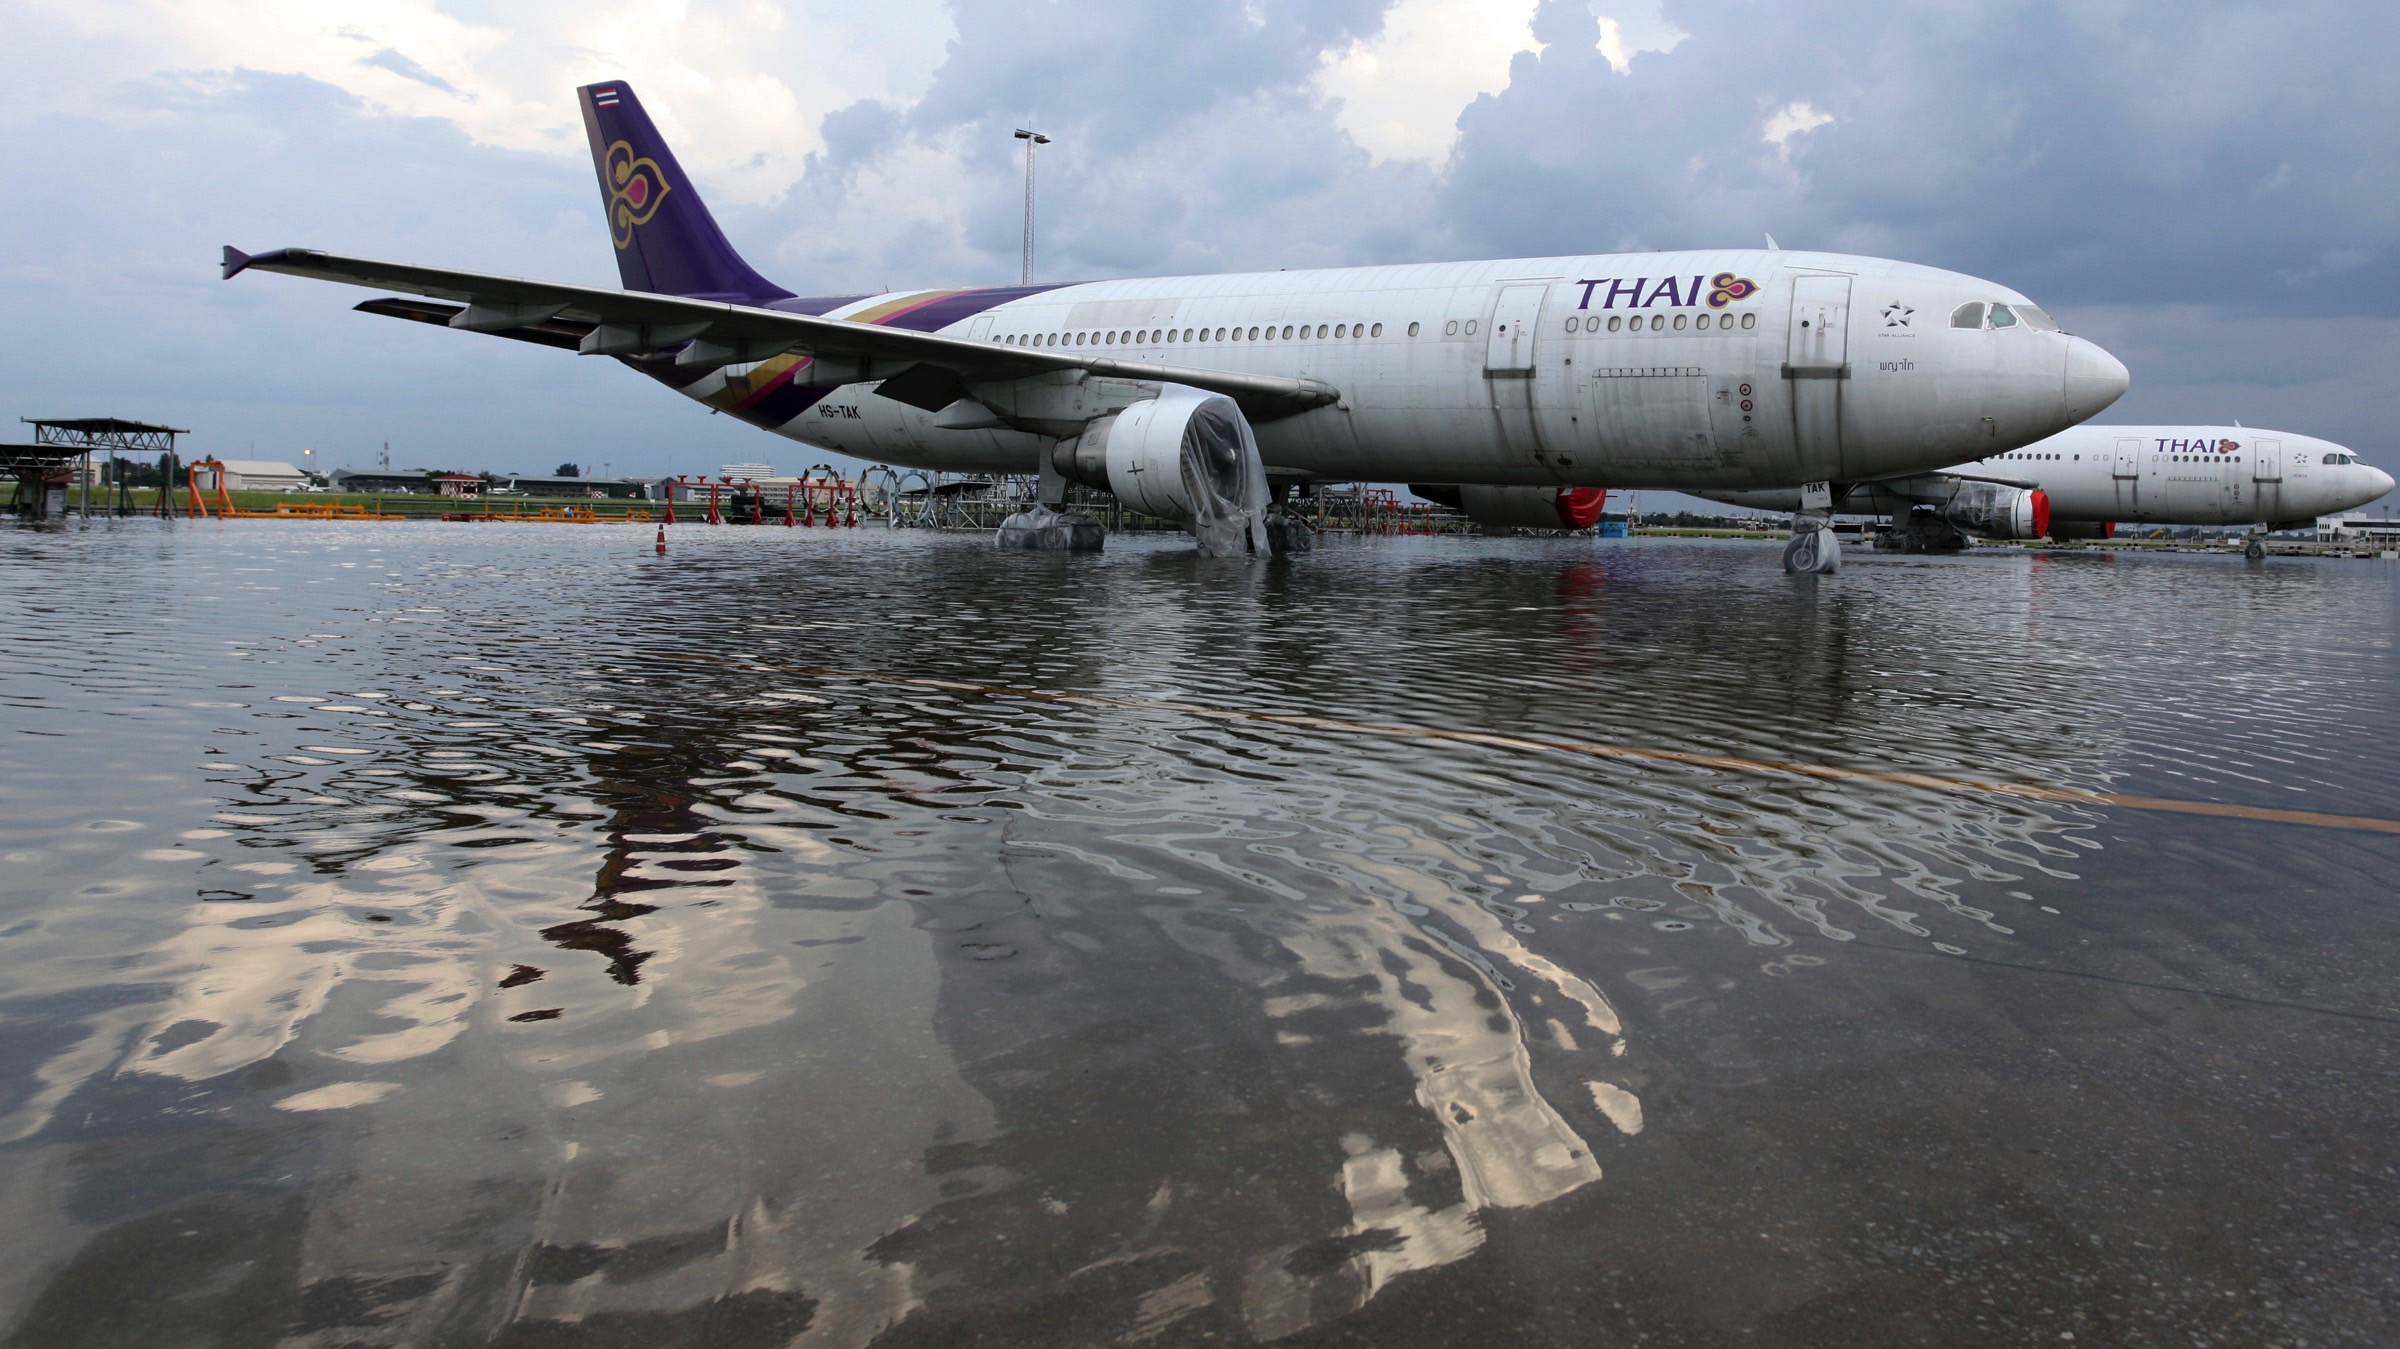 Engines of Thai Airways Airbus A300 planes are protected as floods advanced at the Don Muang airport in Bangkok